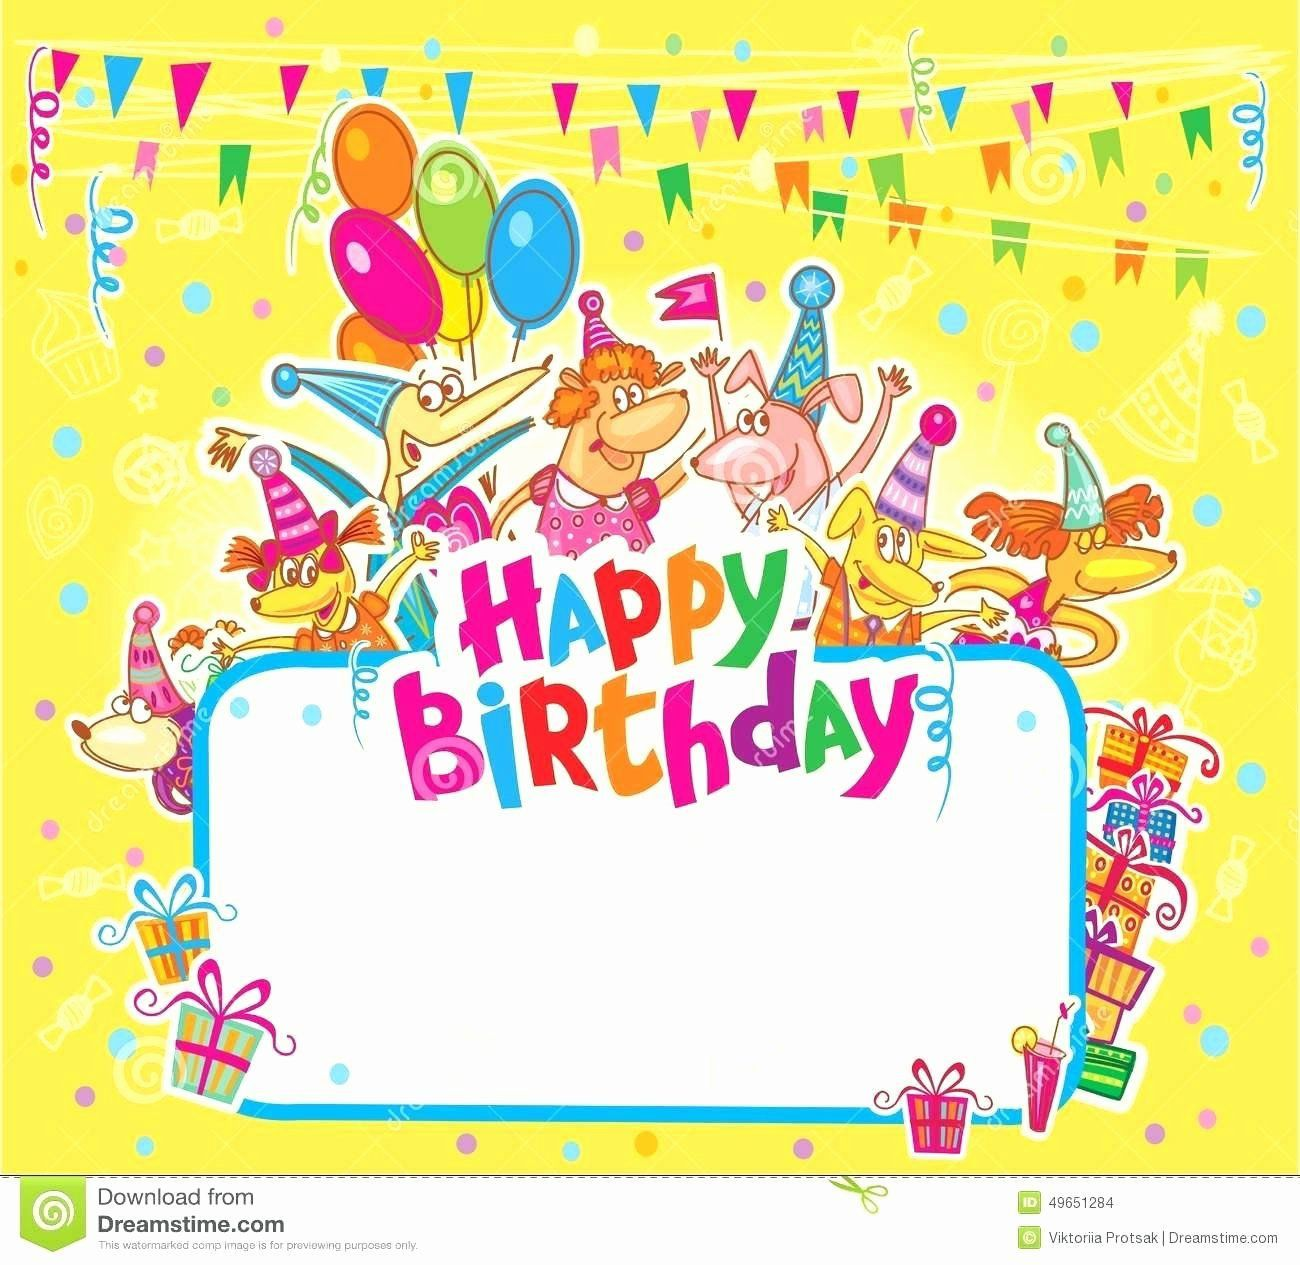 002 Fascinating Happy Birthday Card Template For Word Image Full